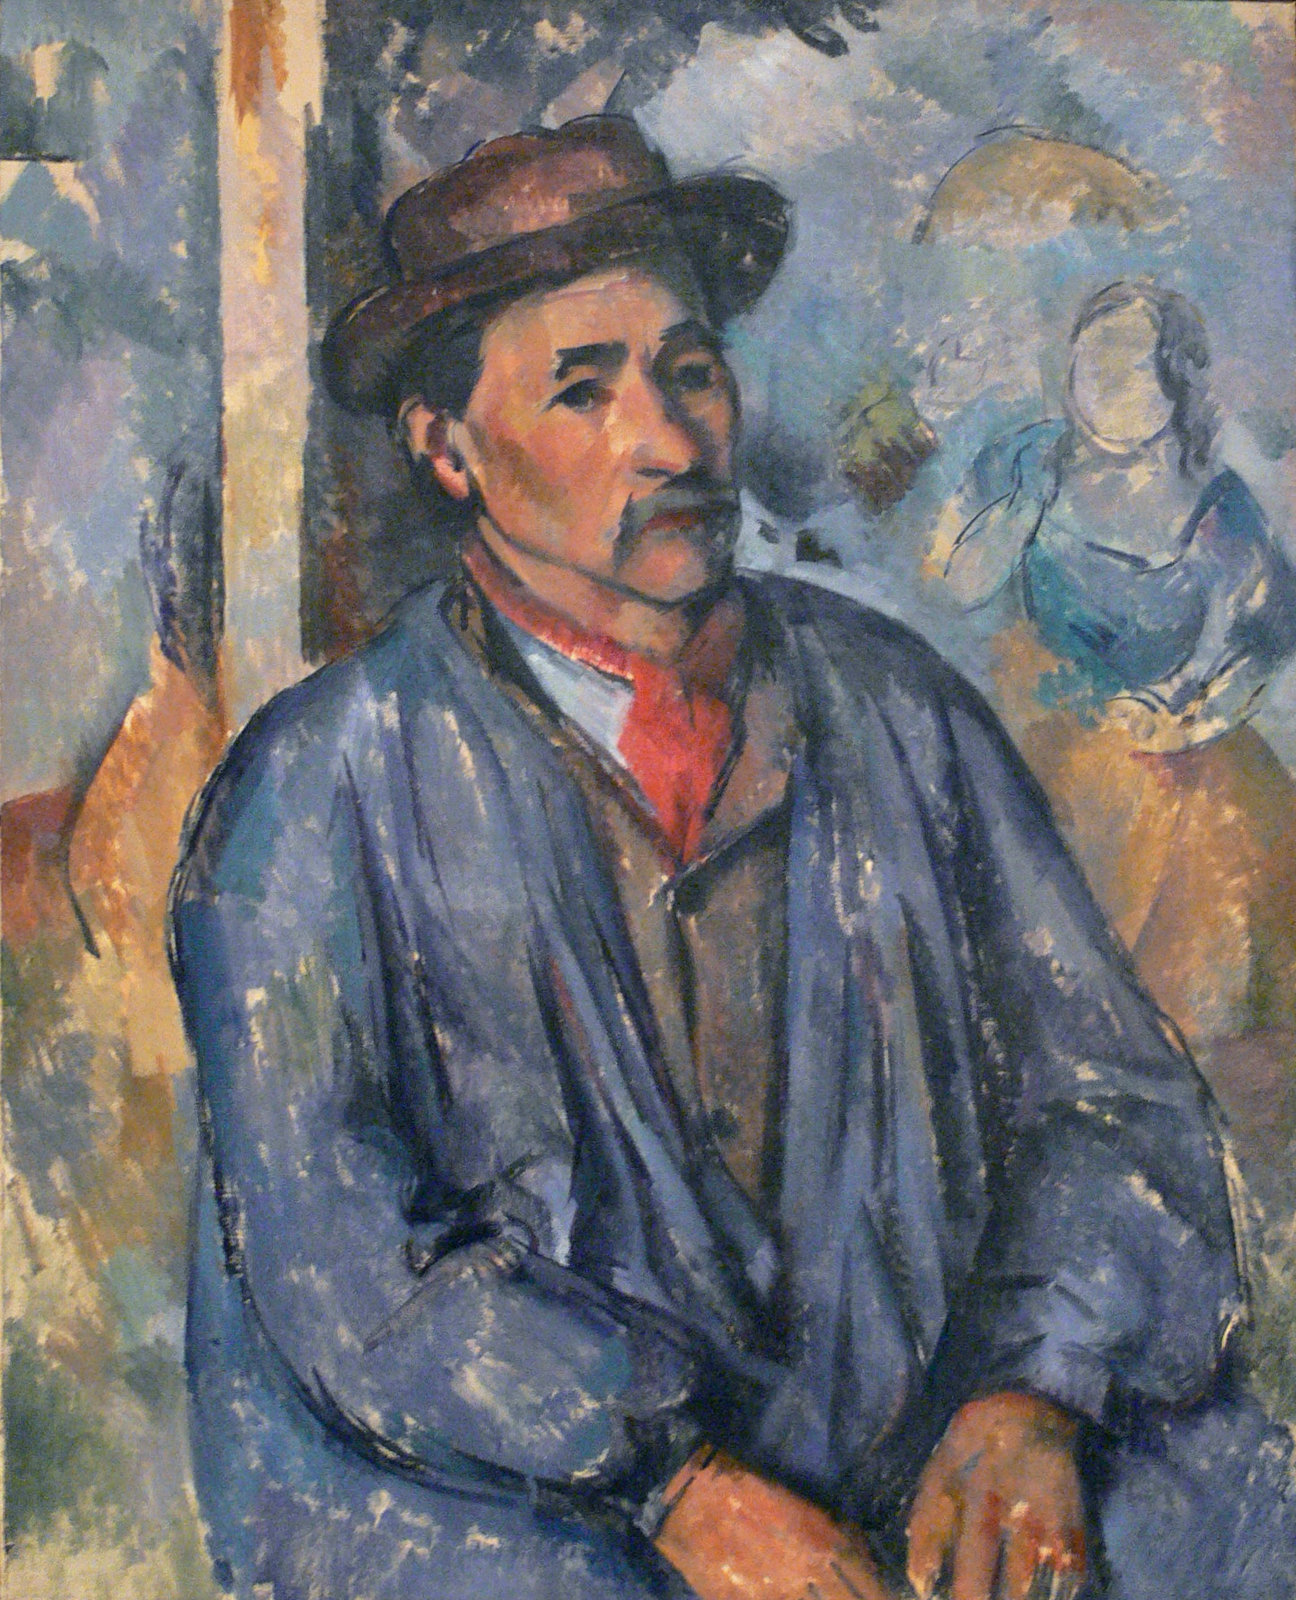 Paul Cézanne, Man in a Blue Smock